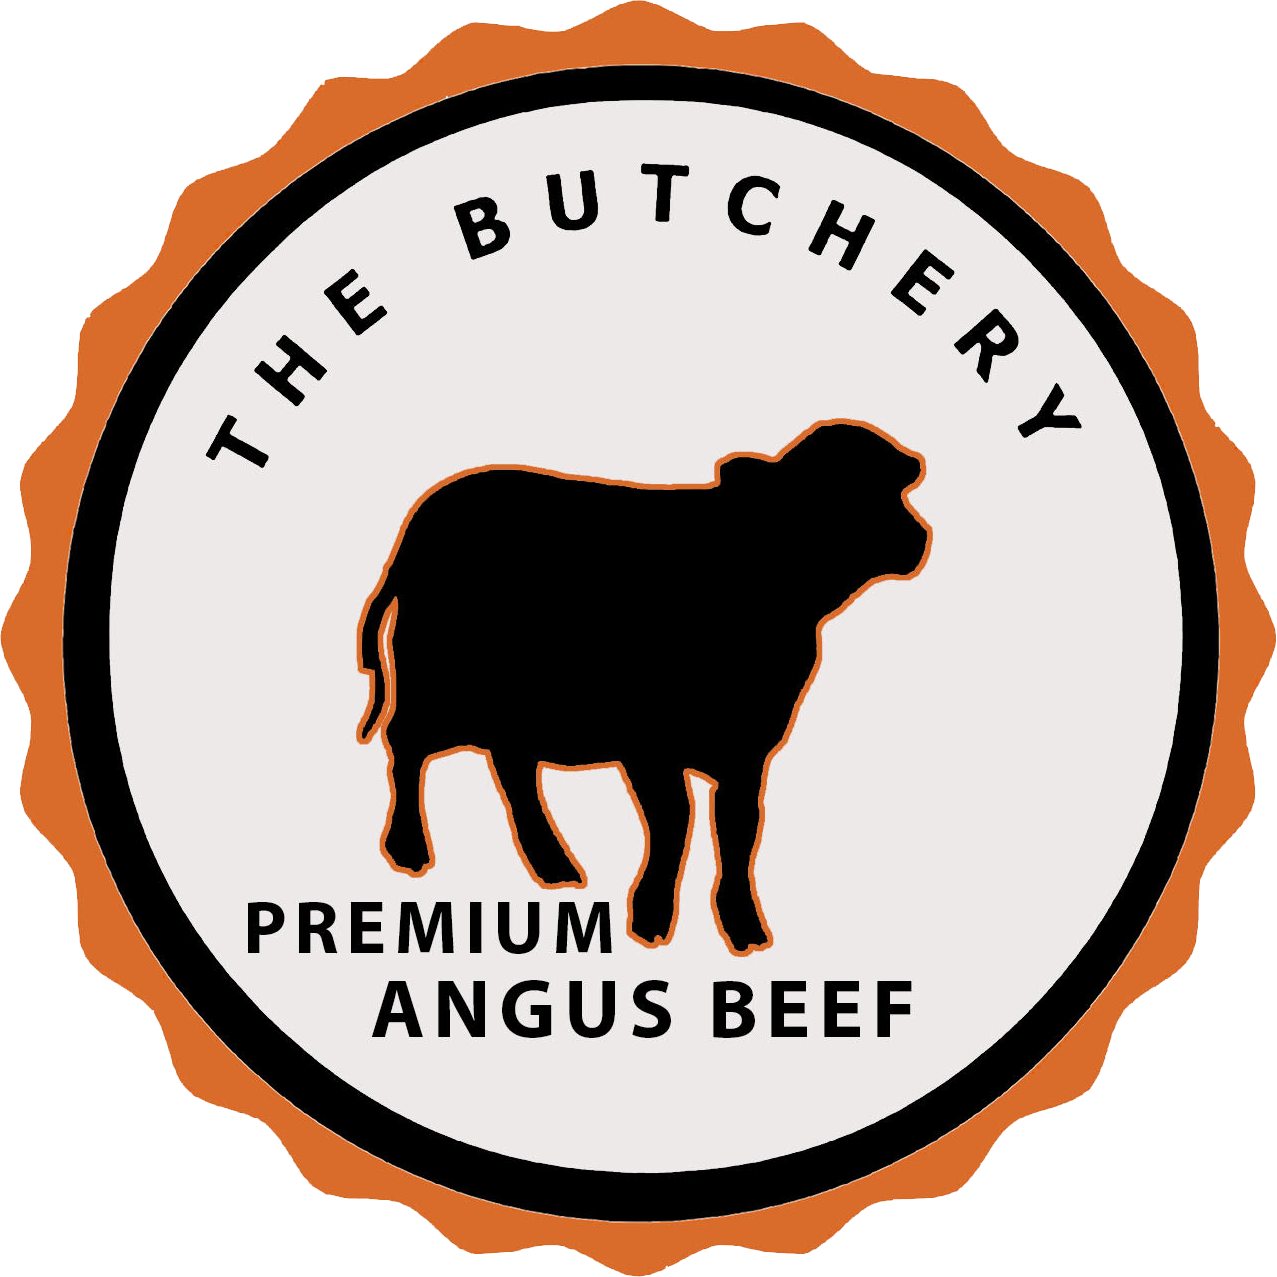 The Butchery Premium Angus Beef